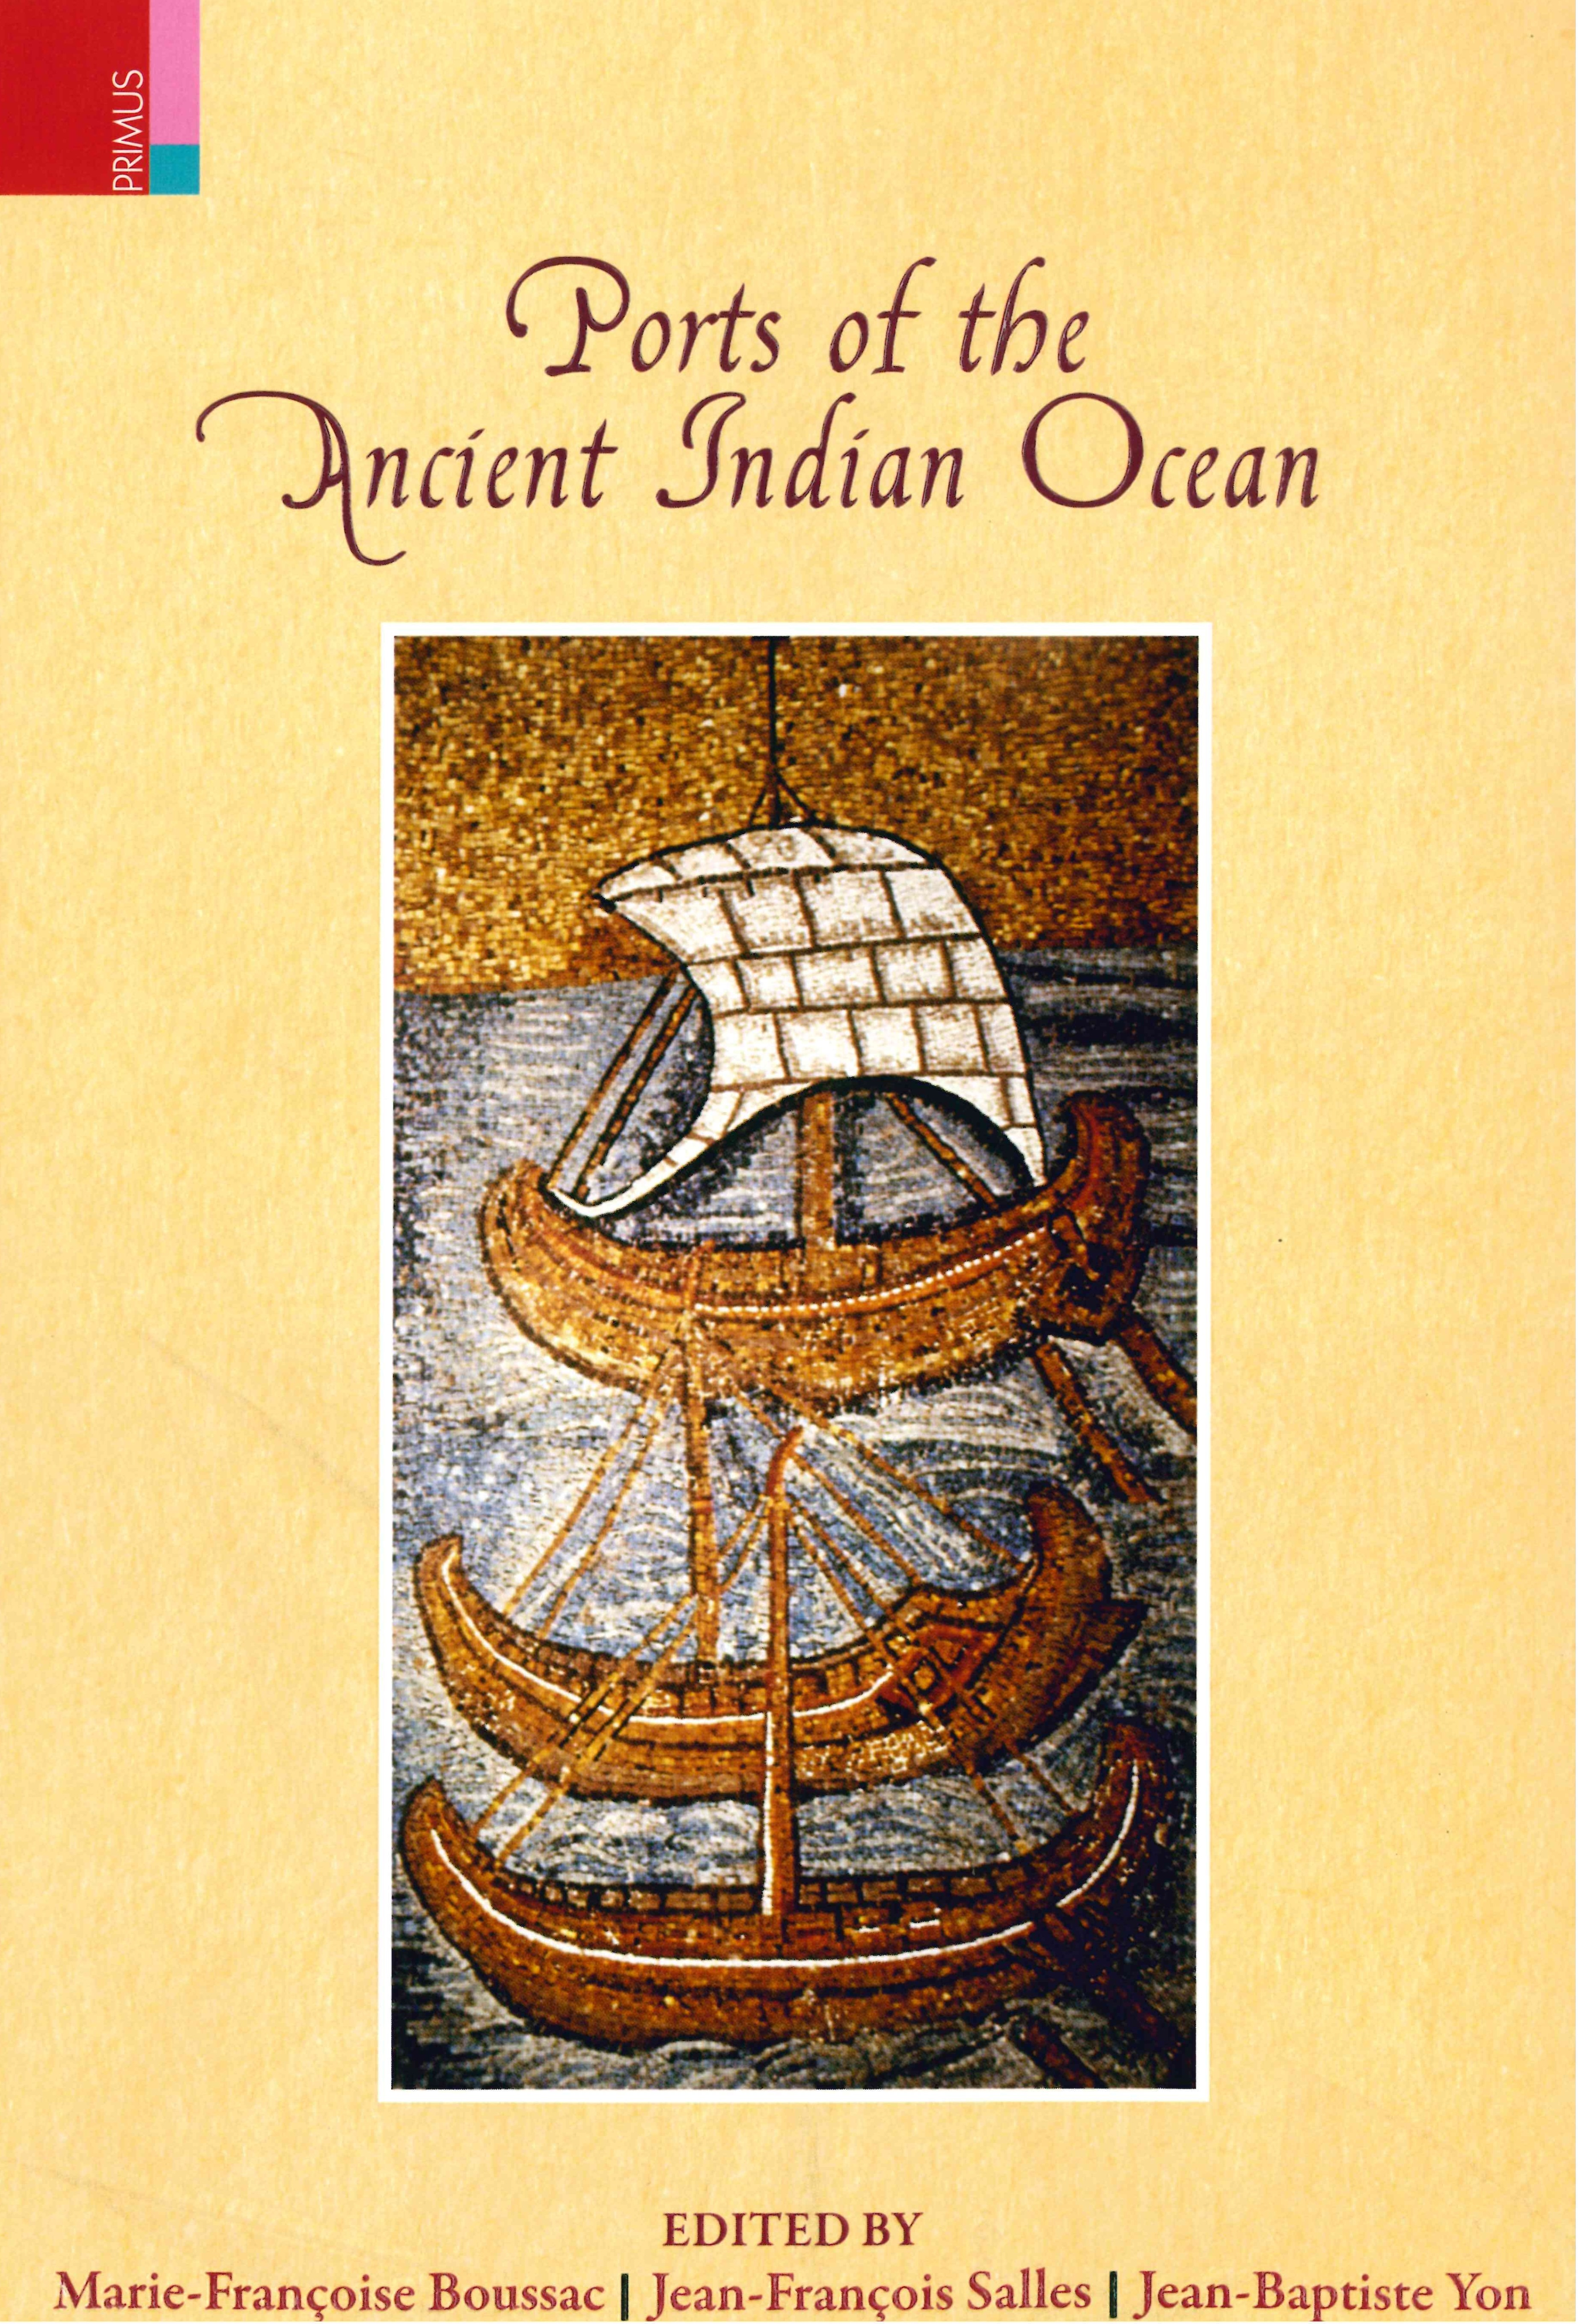 Ports of the Ancient Indian Ocean - Book Detail - Midpoint